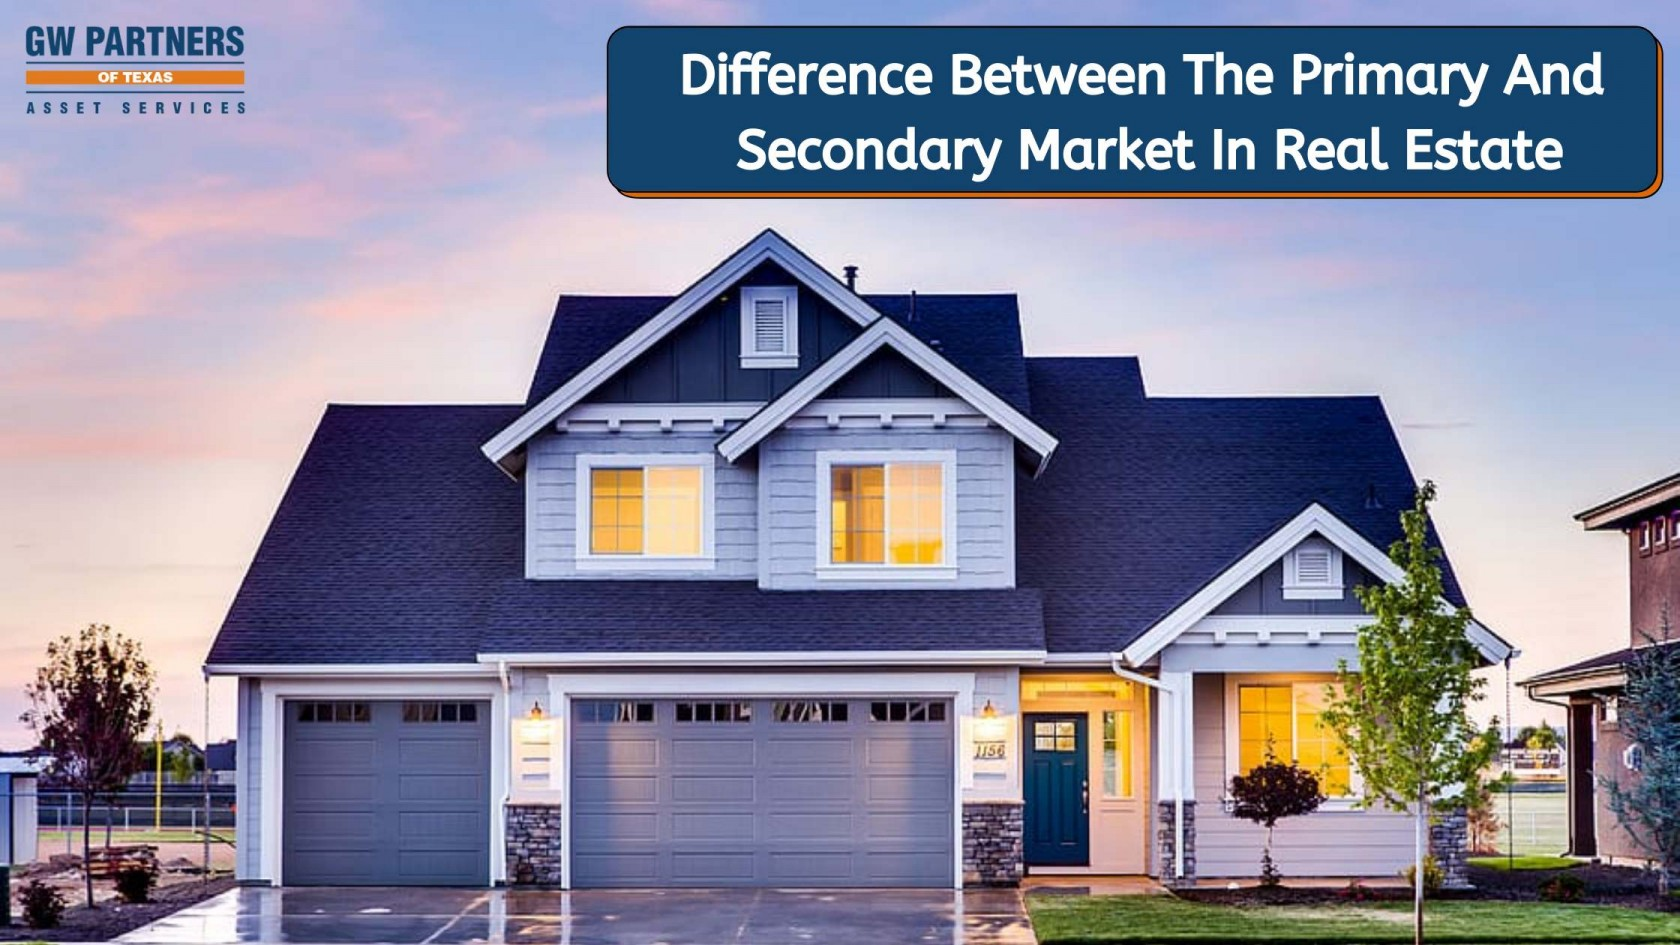 Difference Between The Primary And Secondary Market In Real Estate